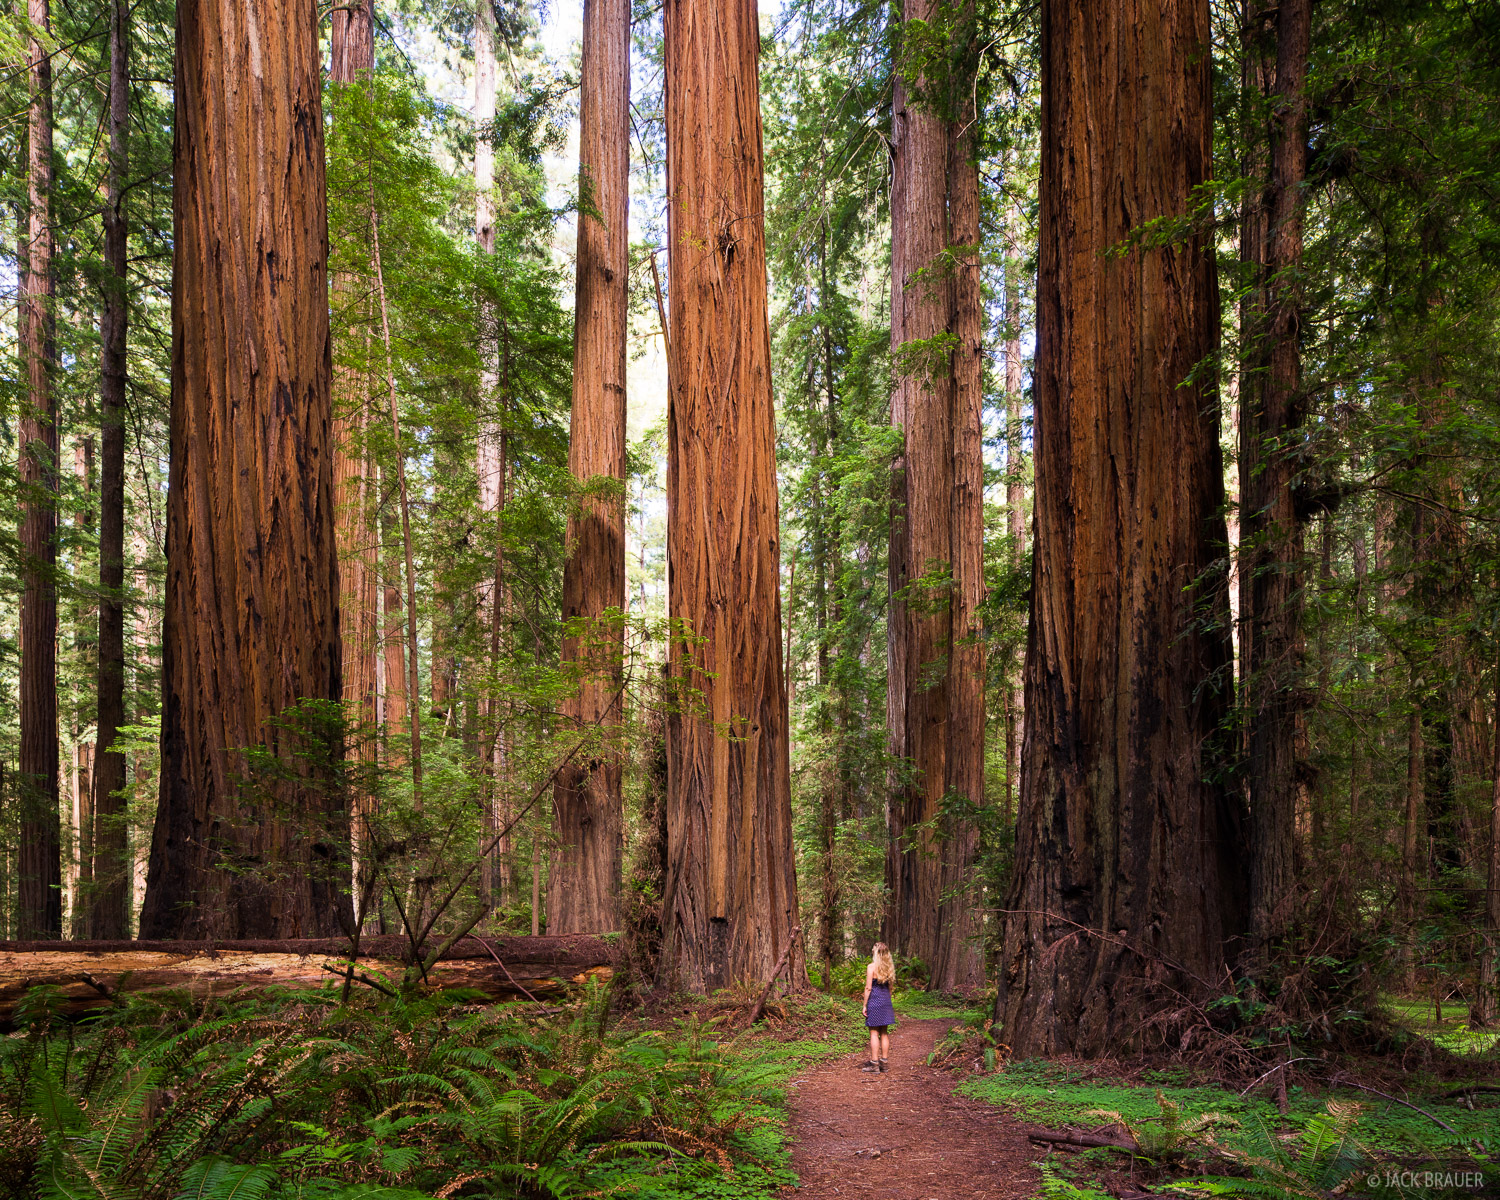 California, Founders Grove, Humboldt Redwoods State Park, redwoods, photo